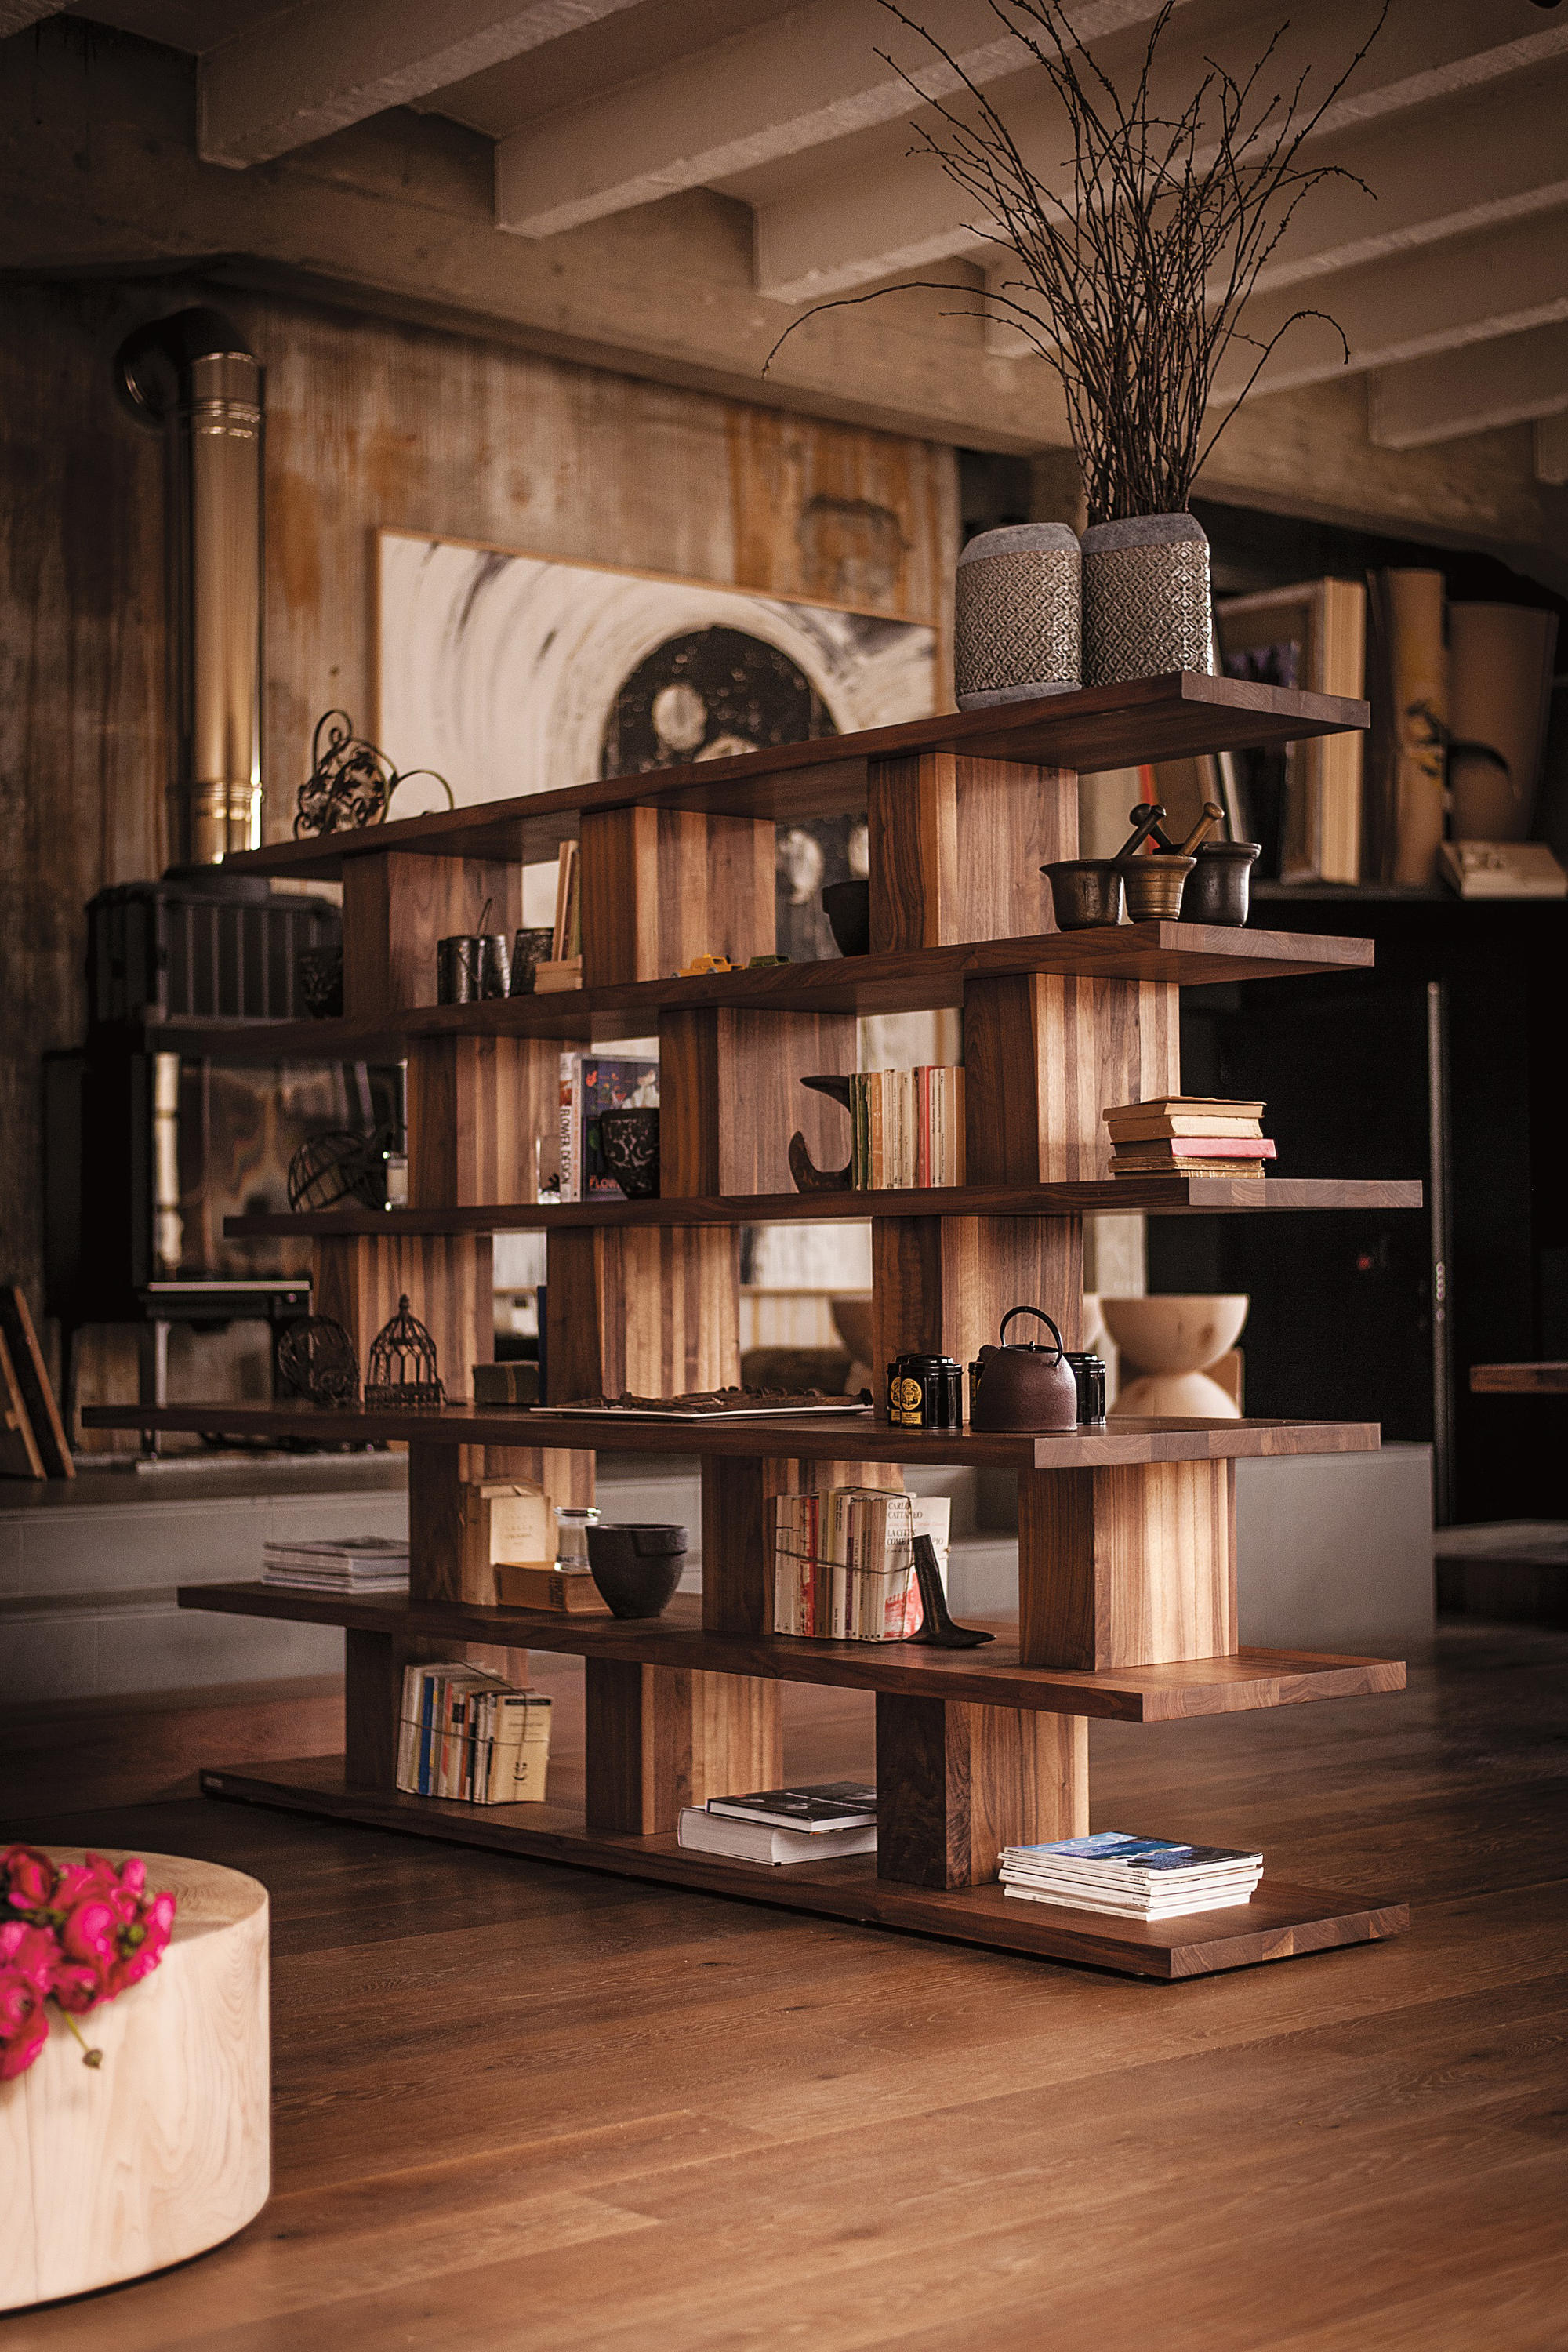 Bookshelf Shelving From Riva 1920 Architonic